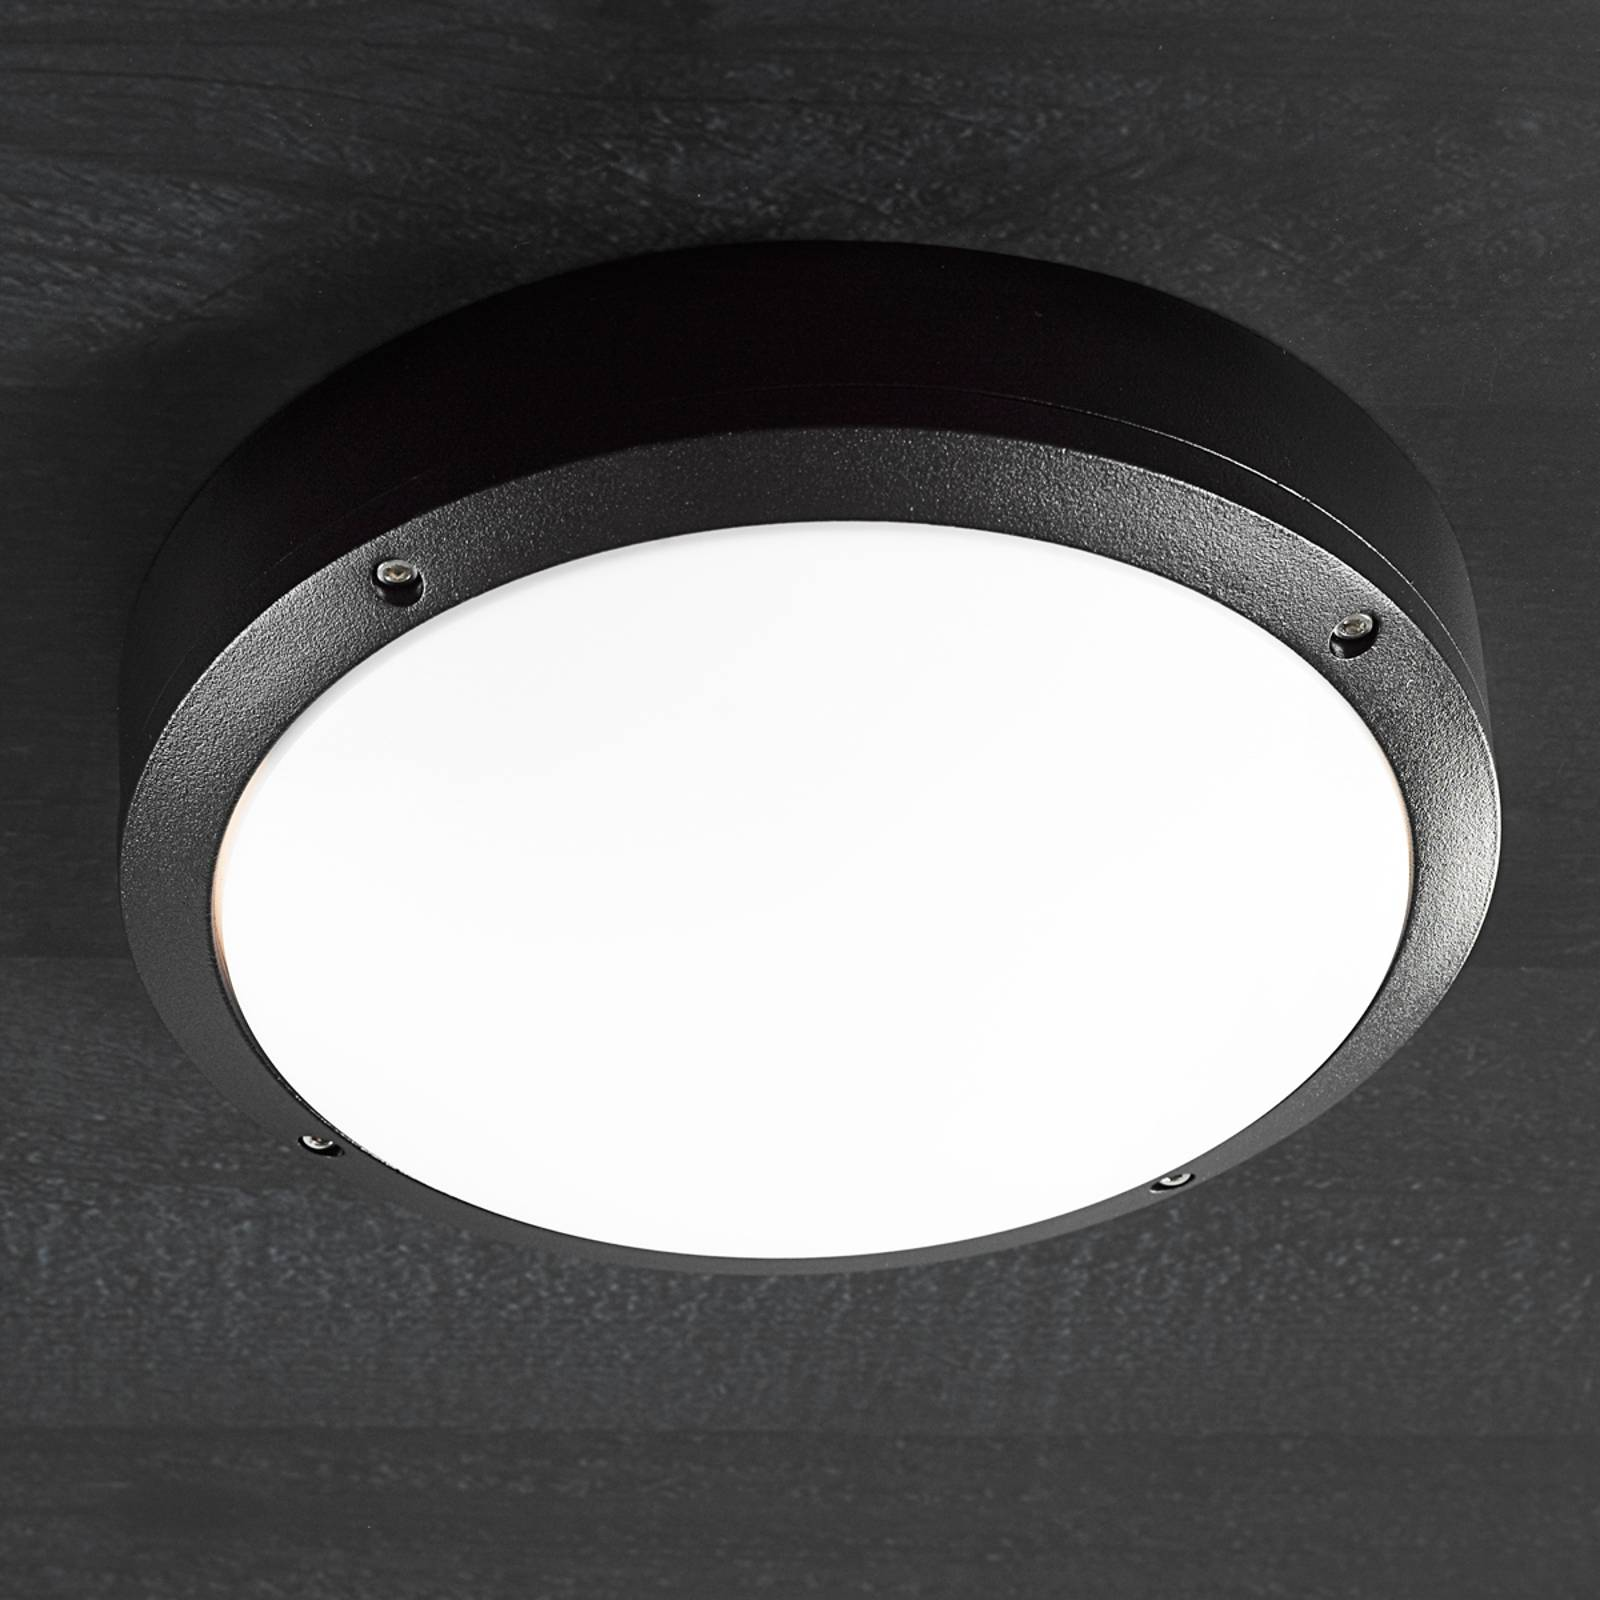 Desi 28 - a ceiling light for outdoors from Nordlux